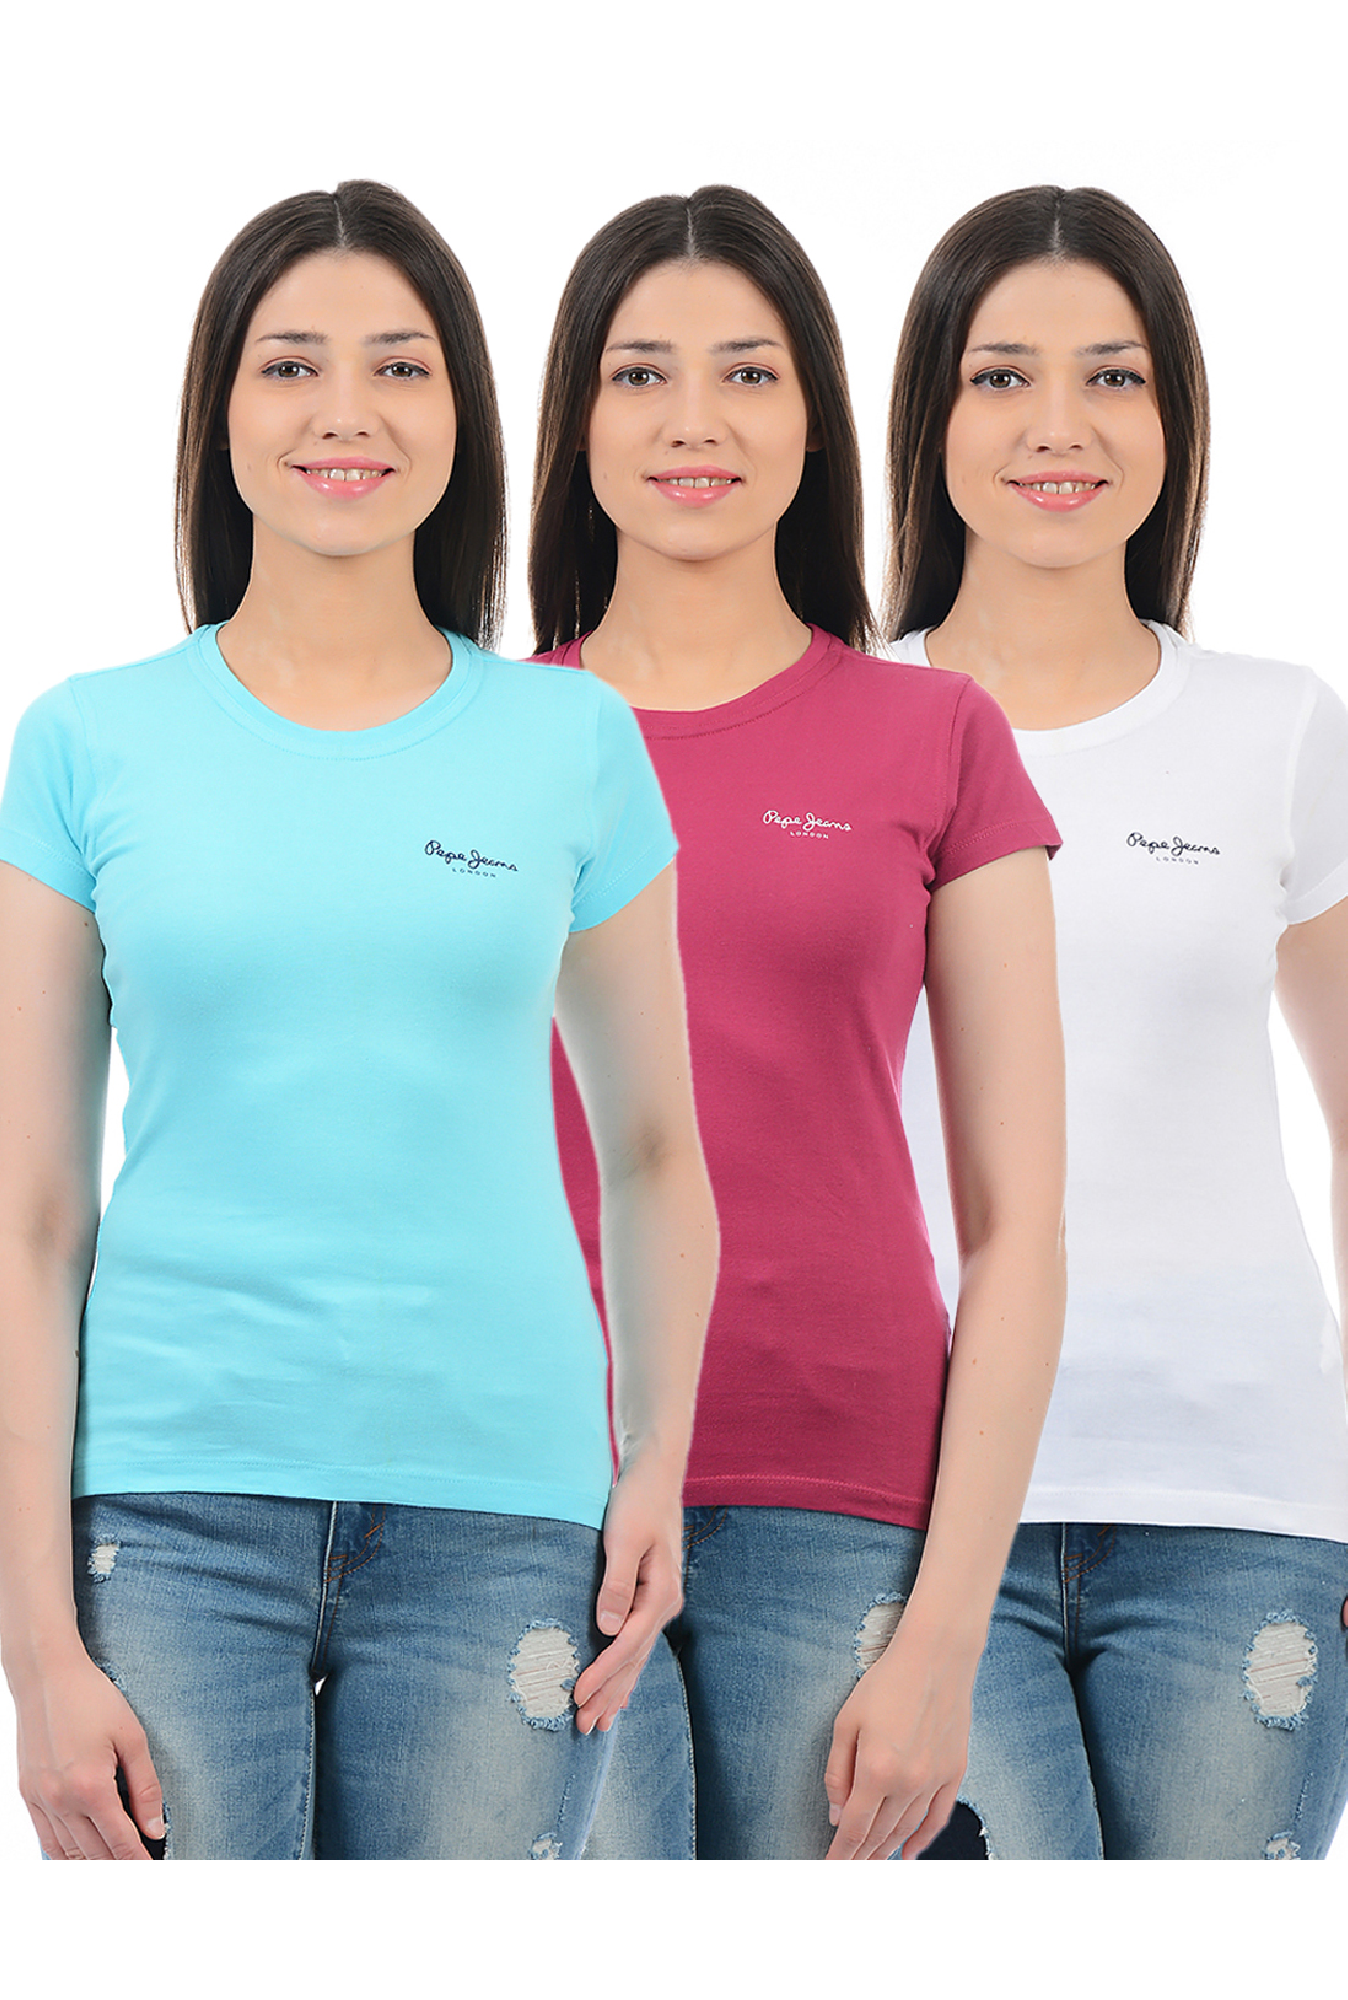 c2158ad4 Buy Pepe Jeans Aqua, Pink & White Slim Fit T-Shirt (Pack Of 3) for Women  Online @ Tata CLiQ